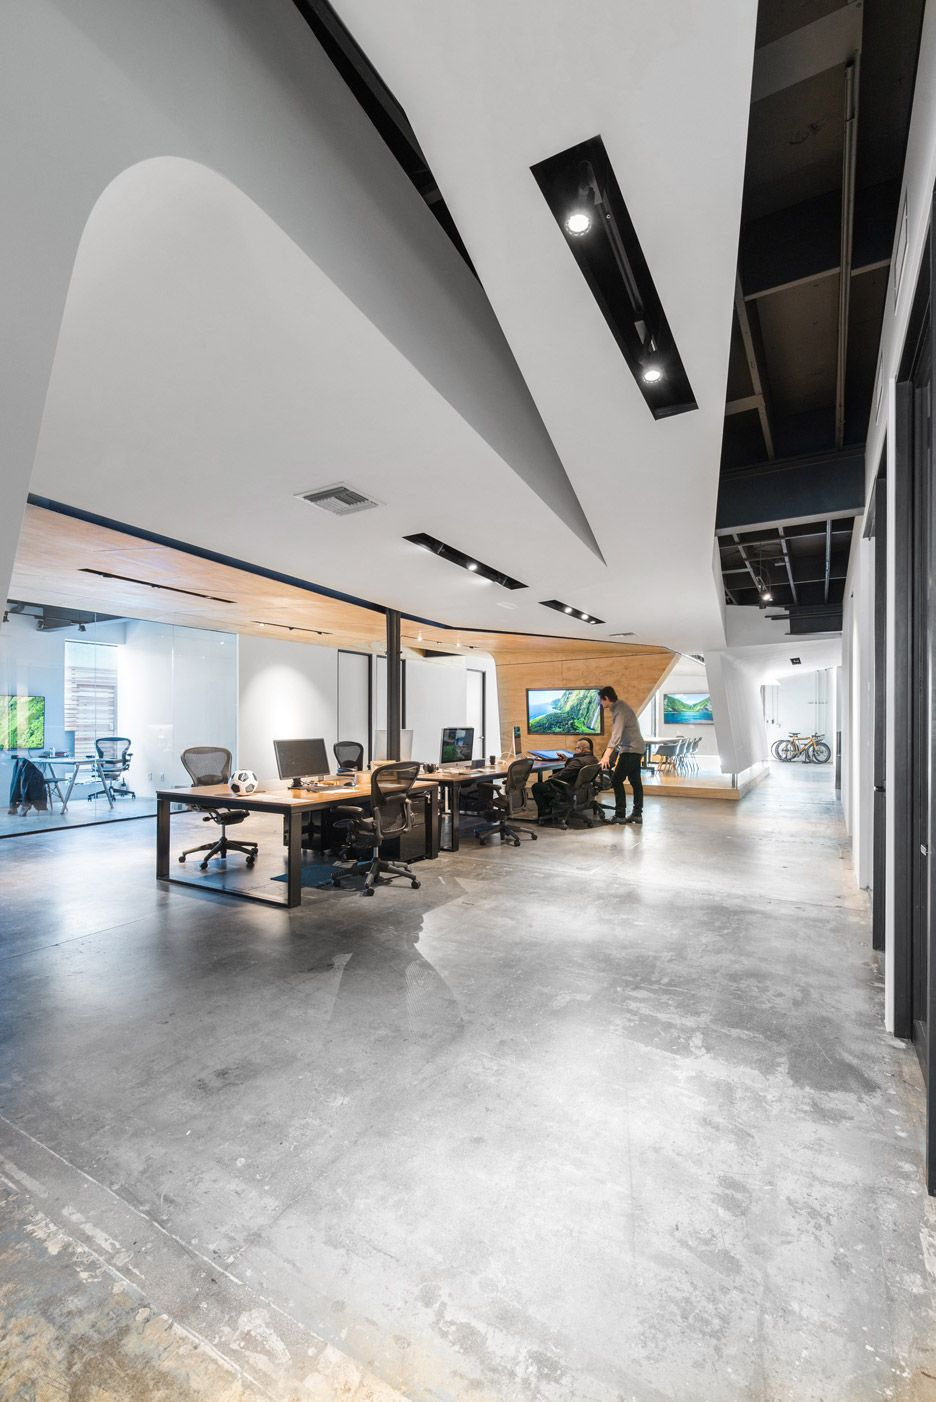 warehouse office design. Converted Warehouse Office By Domaen Features Sculptural Plywood Meeting Rooms Design